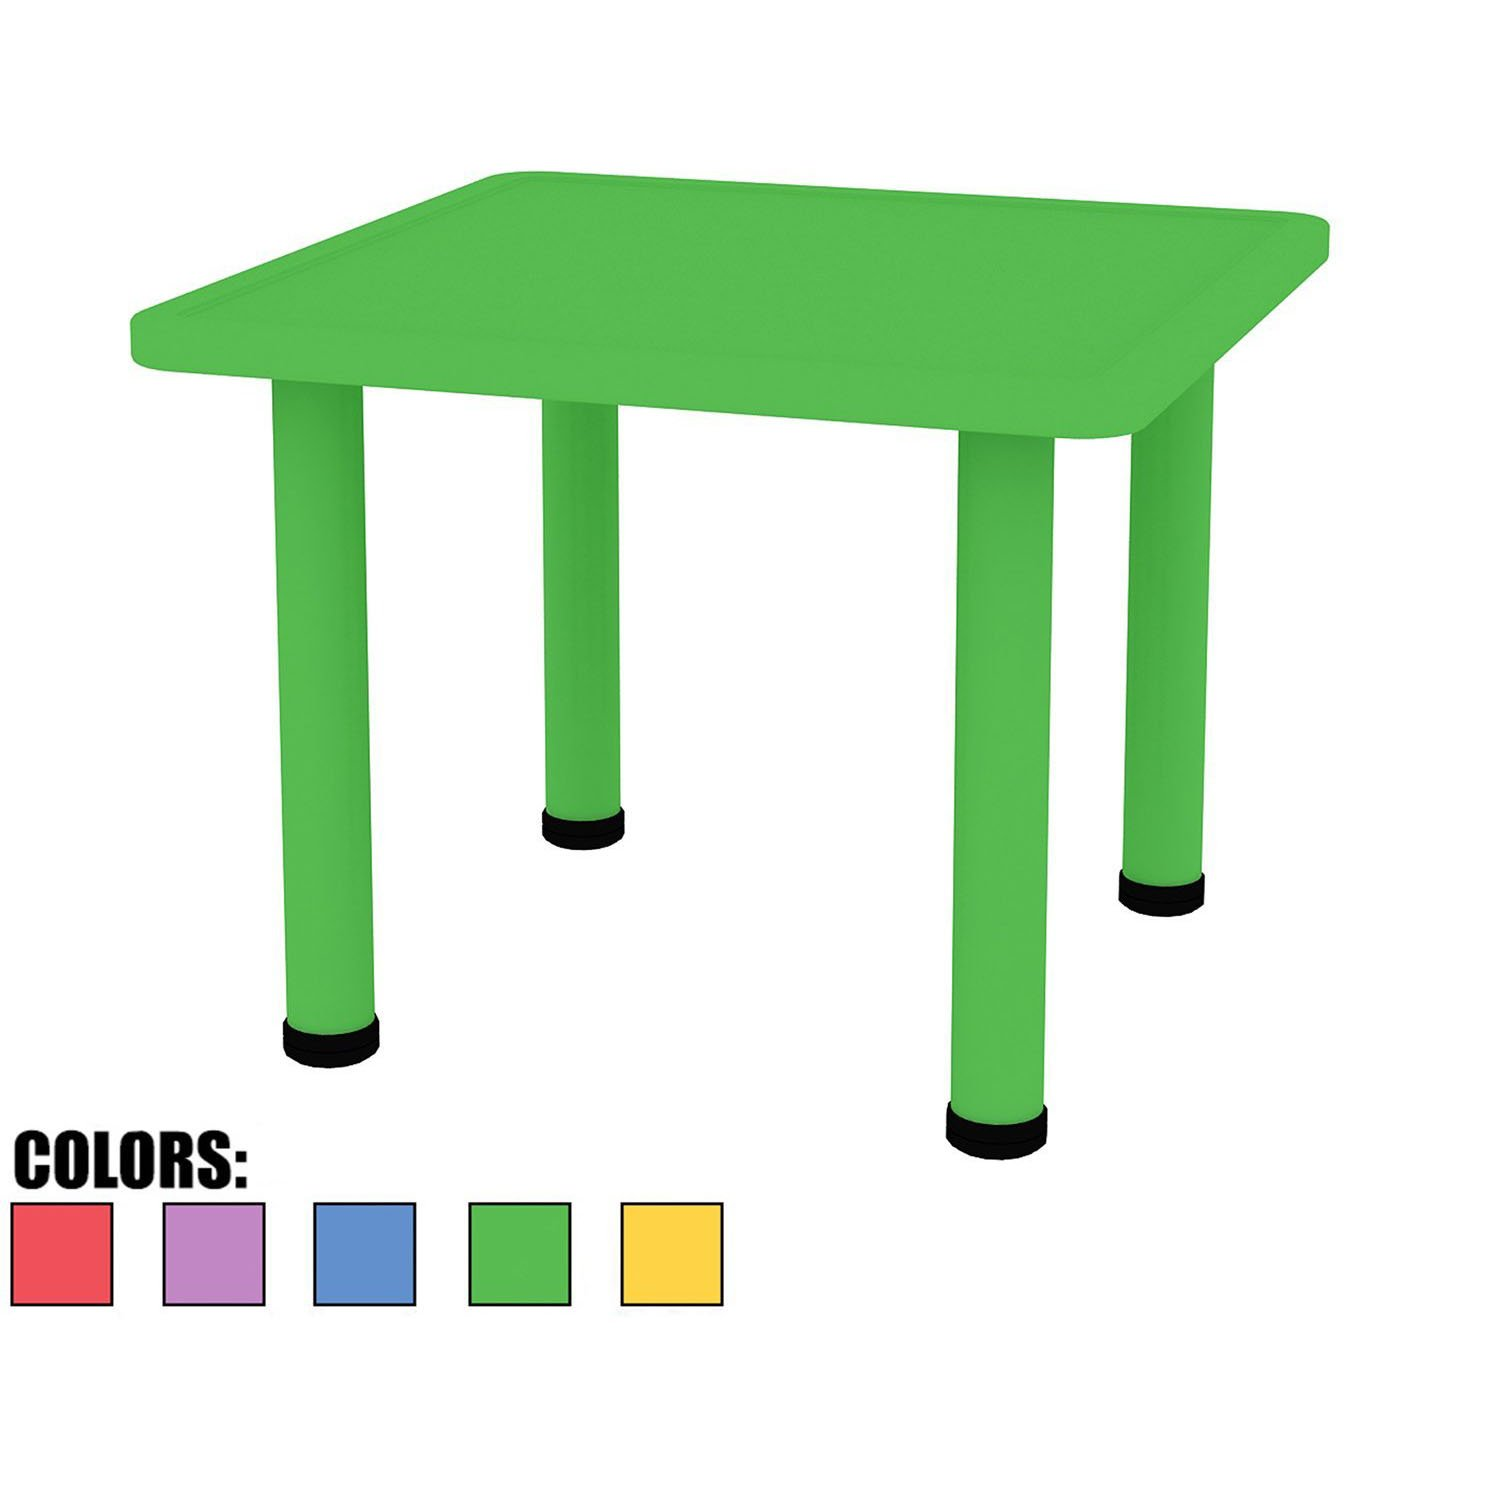 2xhome - Green - Kids Table - Height Adjustable 21.5 inches to 22.5 inches - Square Shaped Plastic Activity table With Metal legs for Preschool School Learn Play 24'' x 24'' by 2xhome